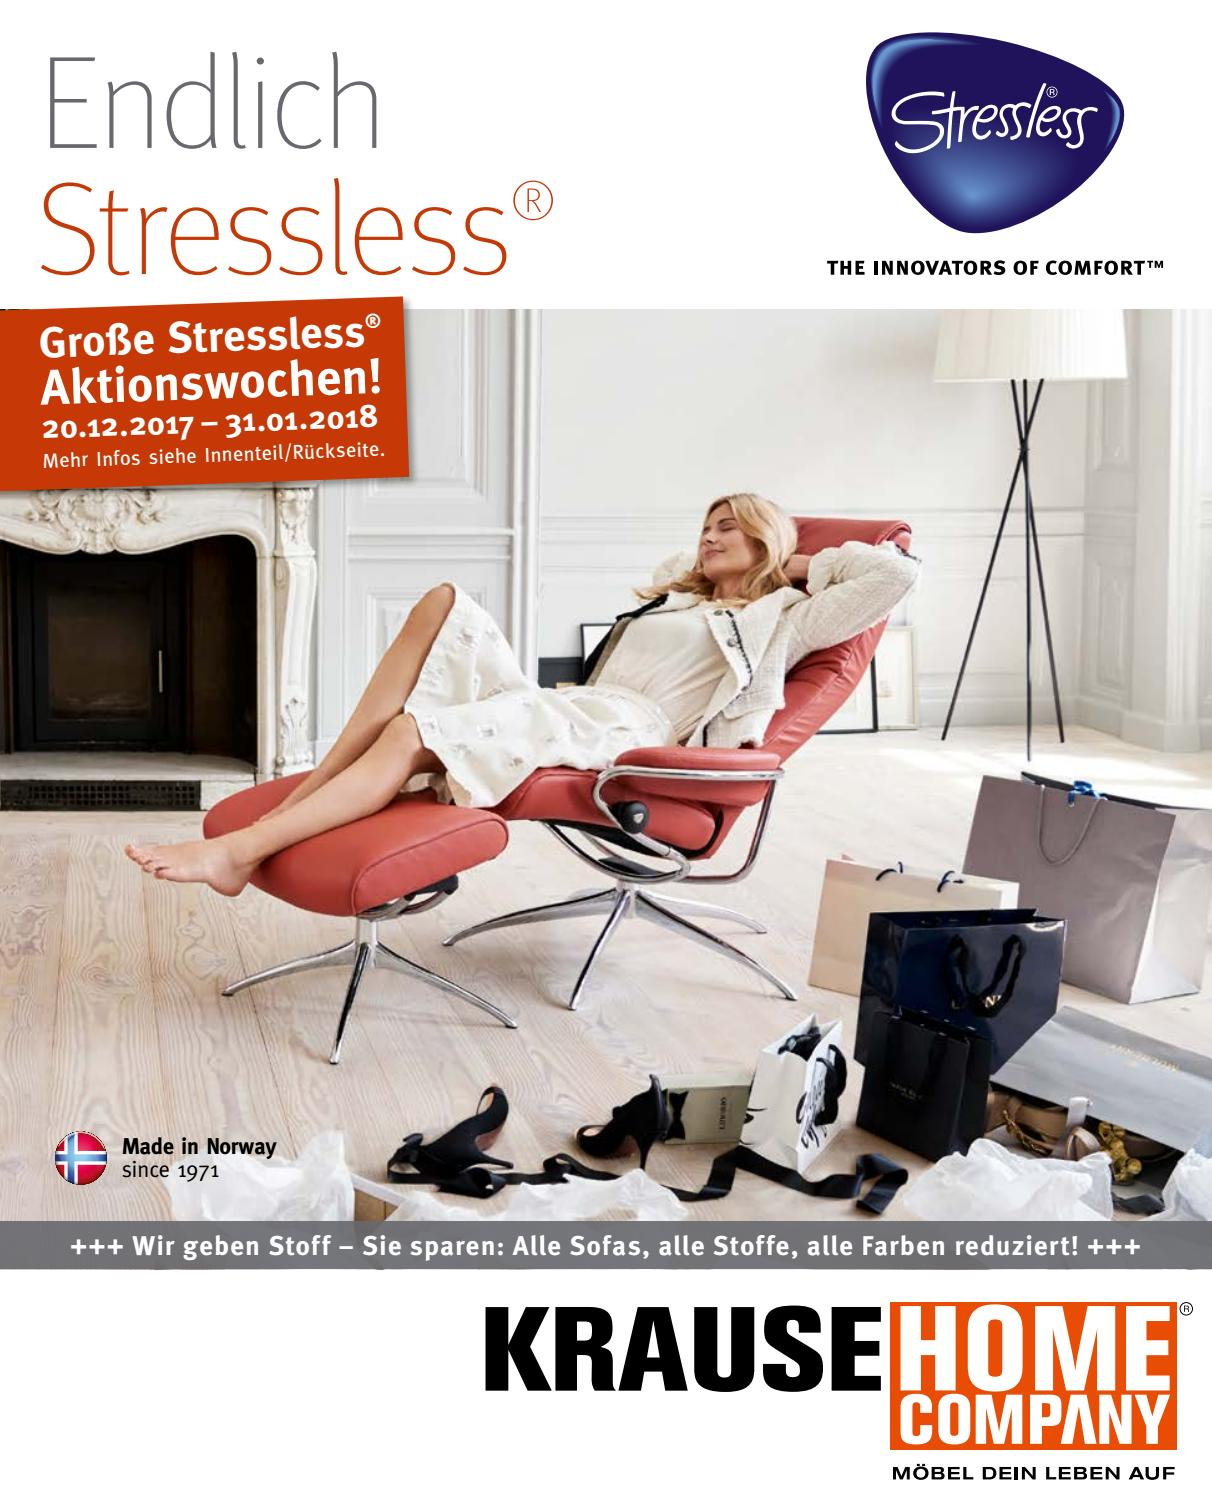 Stressless Lederfarben Krause Home Company Stressless Prospekt Winter 2017 By Nldm Issuu